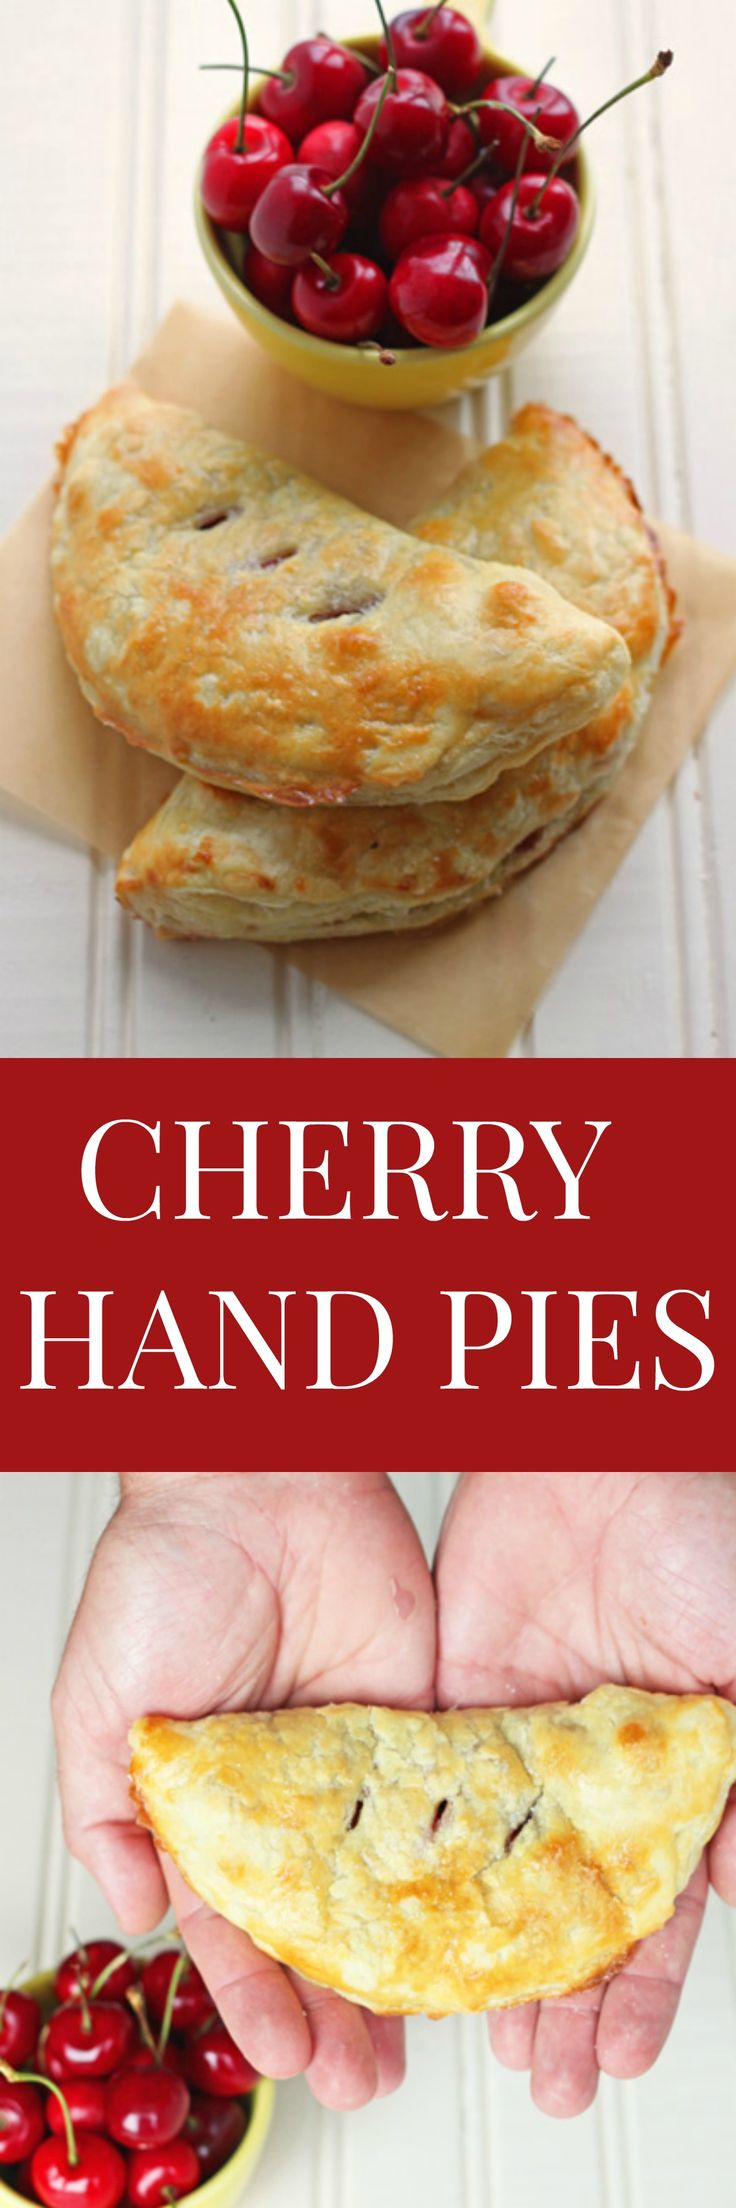 design your own football cleats Mini hand pies made with fresh cherries  A cherry pie recipe made with fresh cherries can  39 t be beat for 4th of July pie dessert   DessertForTwo